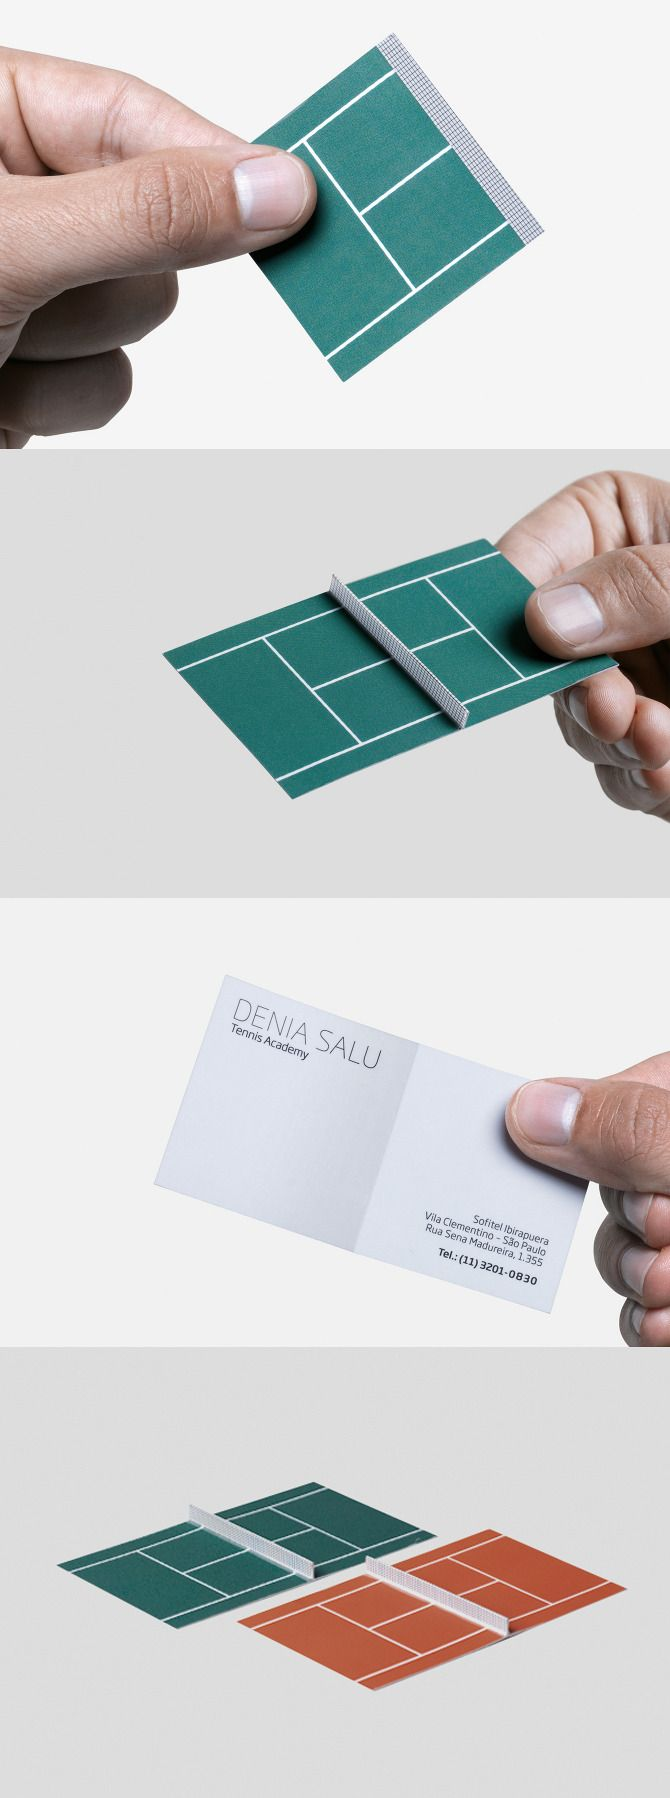 Tennis academy business card opens up into a tennis court!